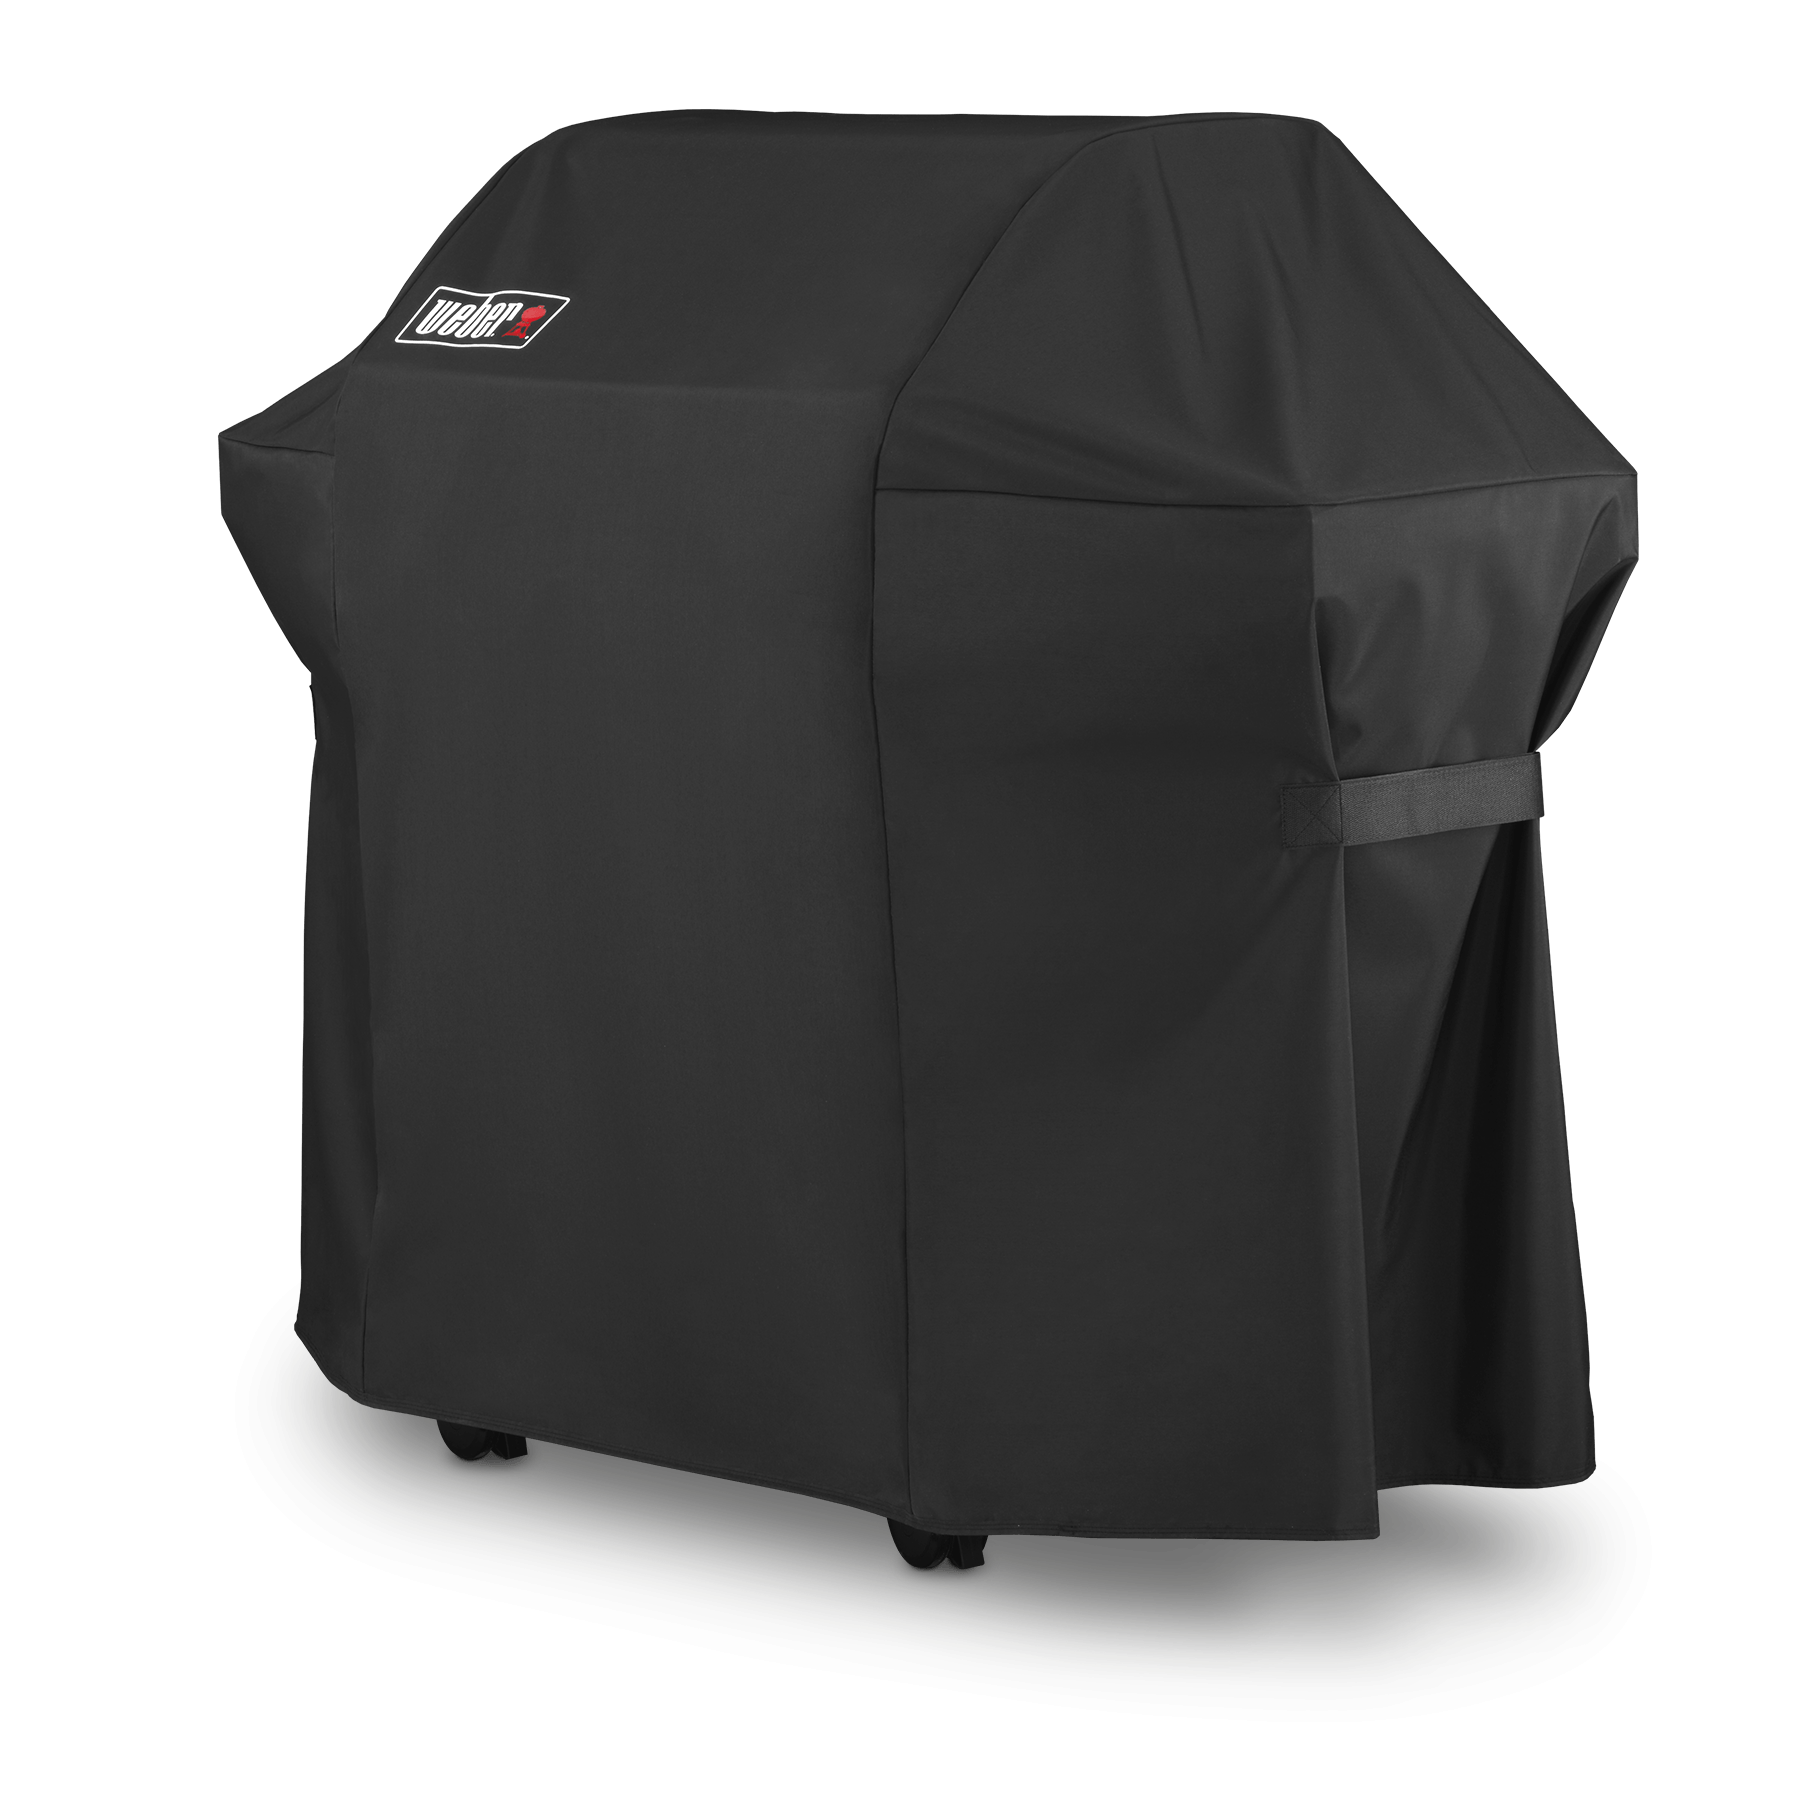 Bbq Hoes Action Premium Grill Cover Spirit 220 300 Weber Grills